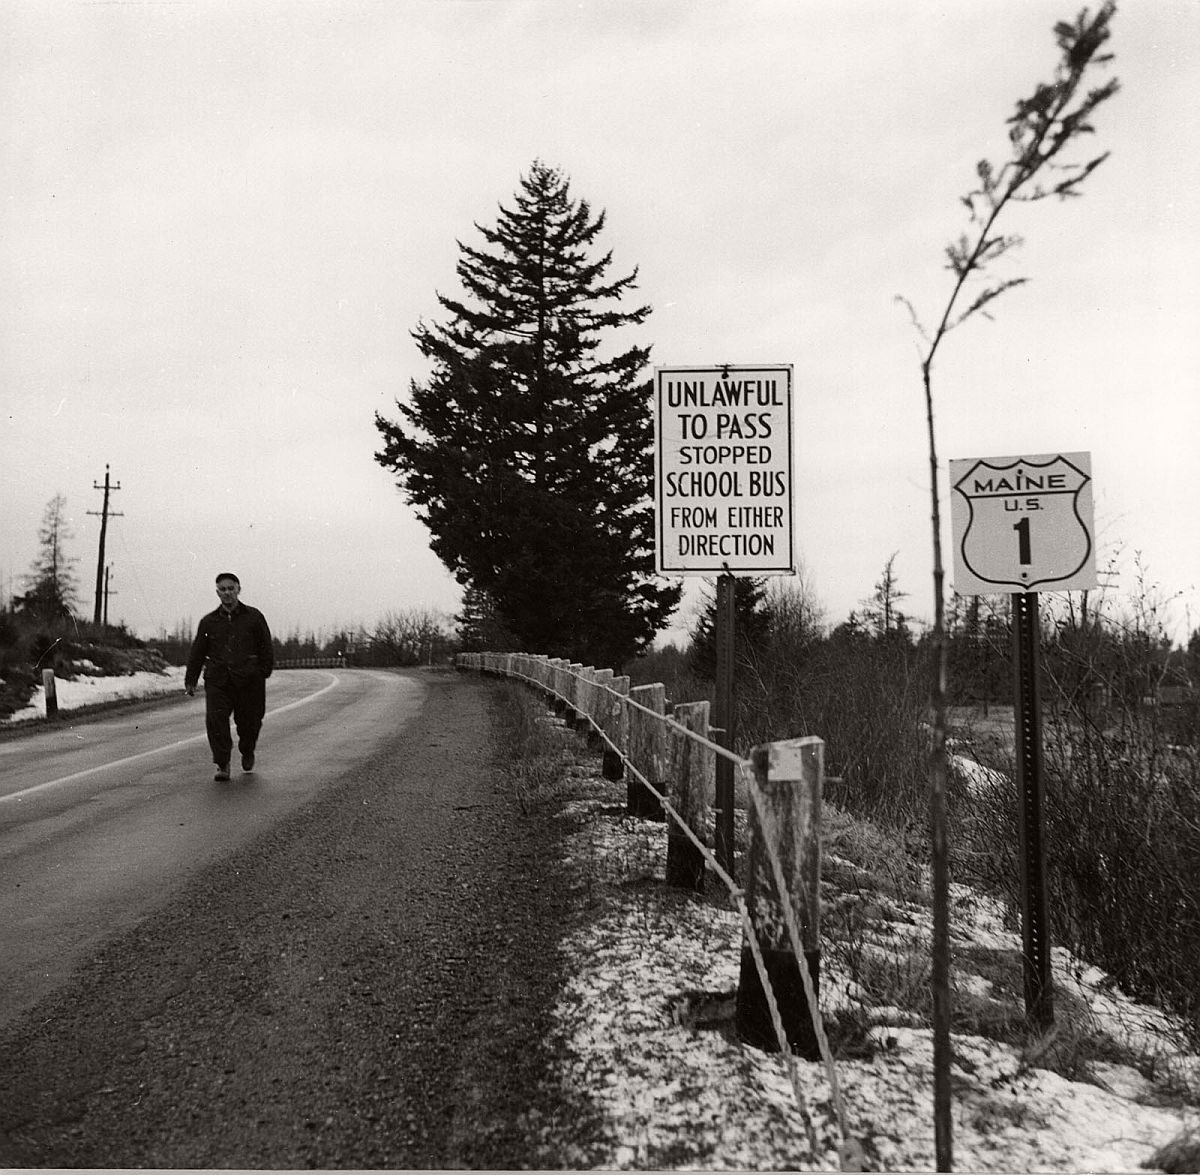 Roadsign, Route 1, Maine, 1954 by Berenice Abbott